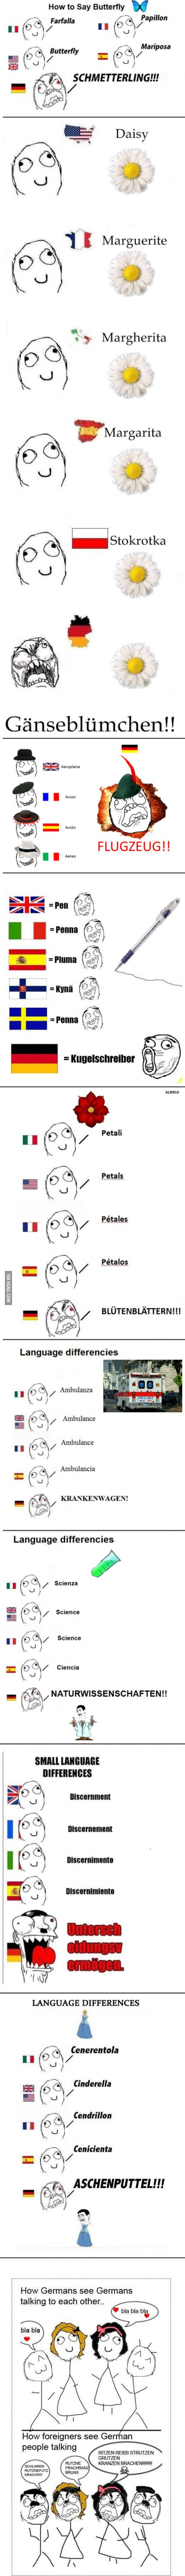 german language lol